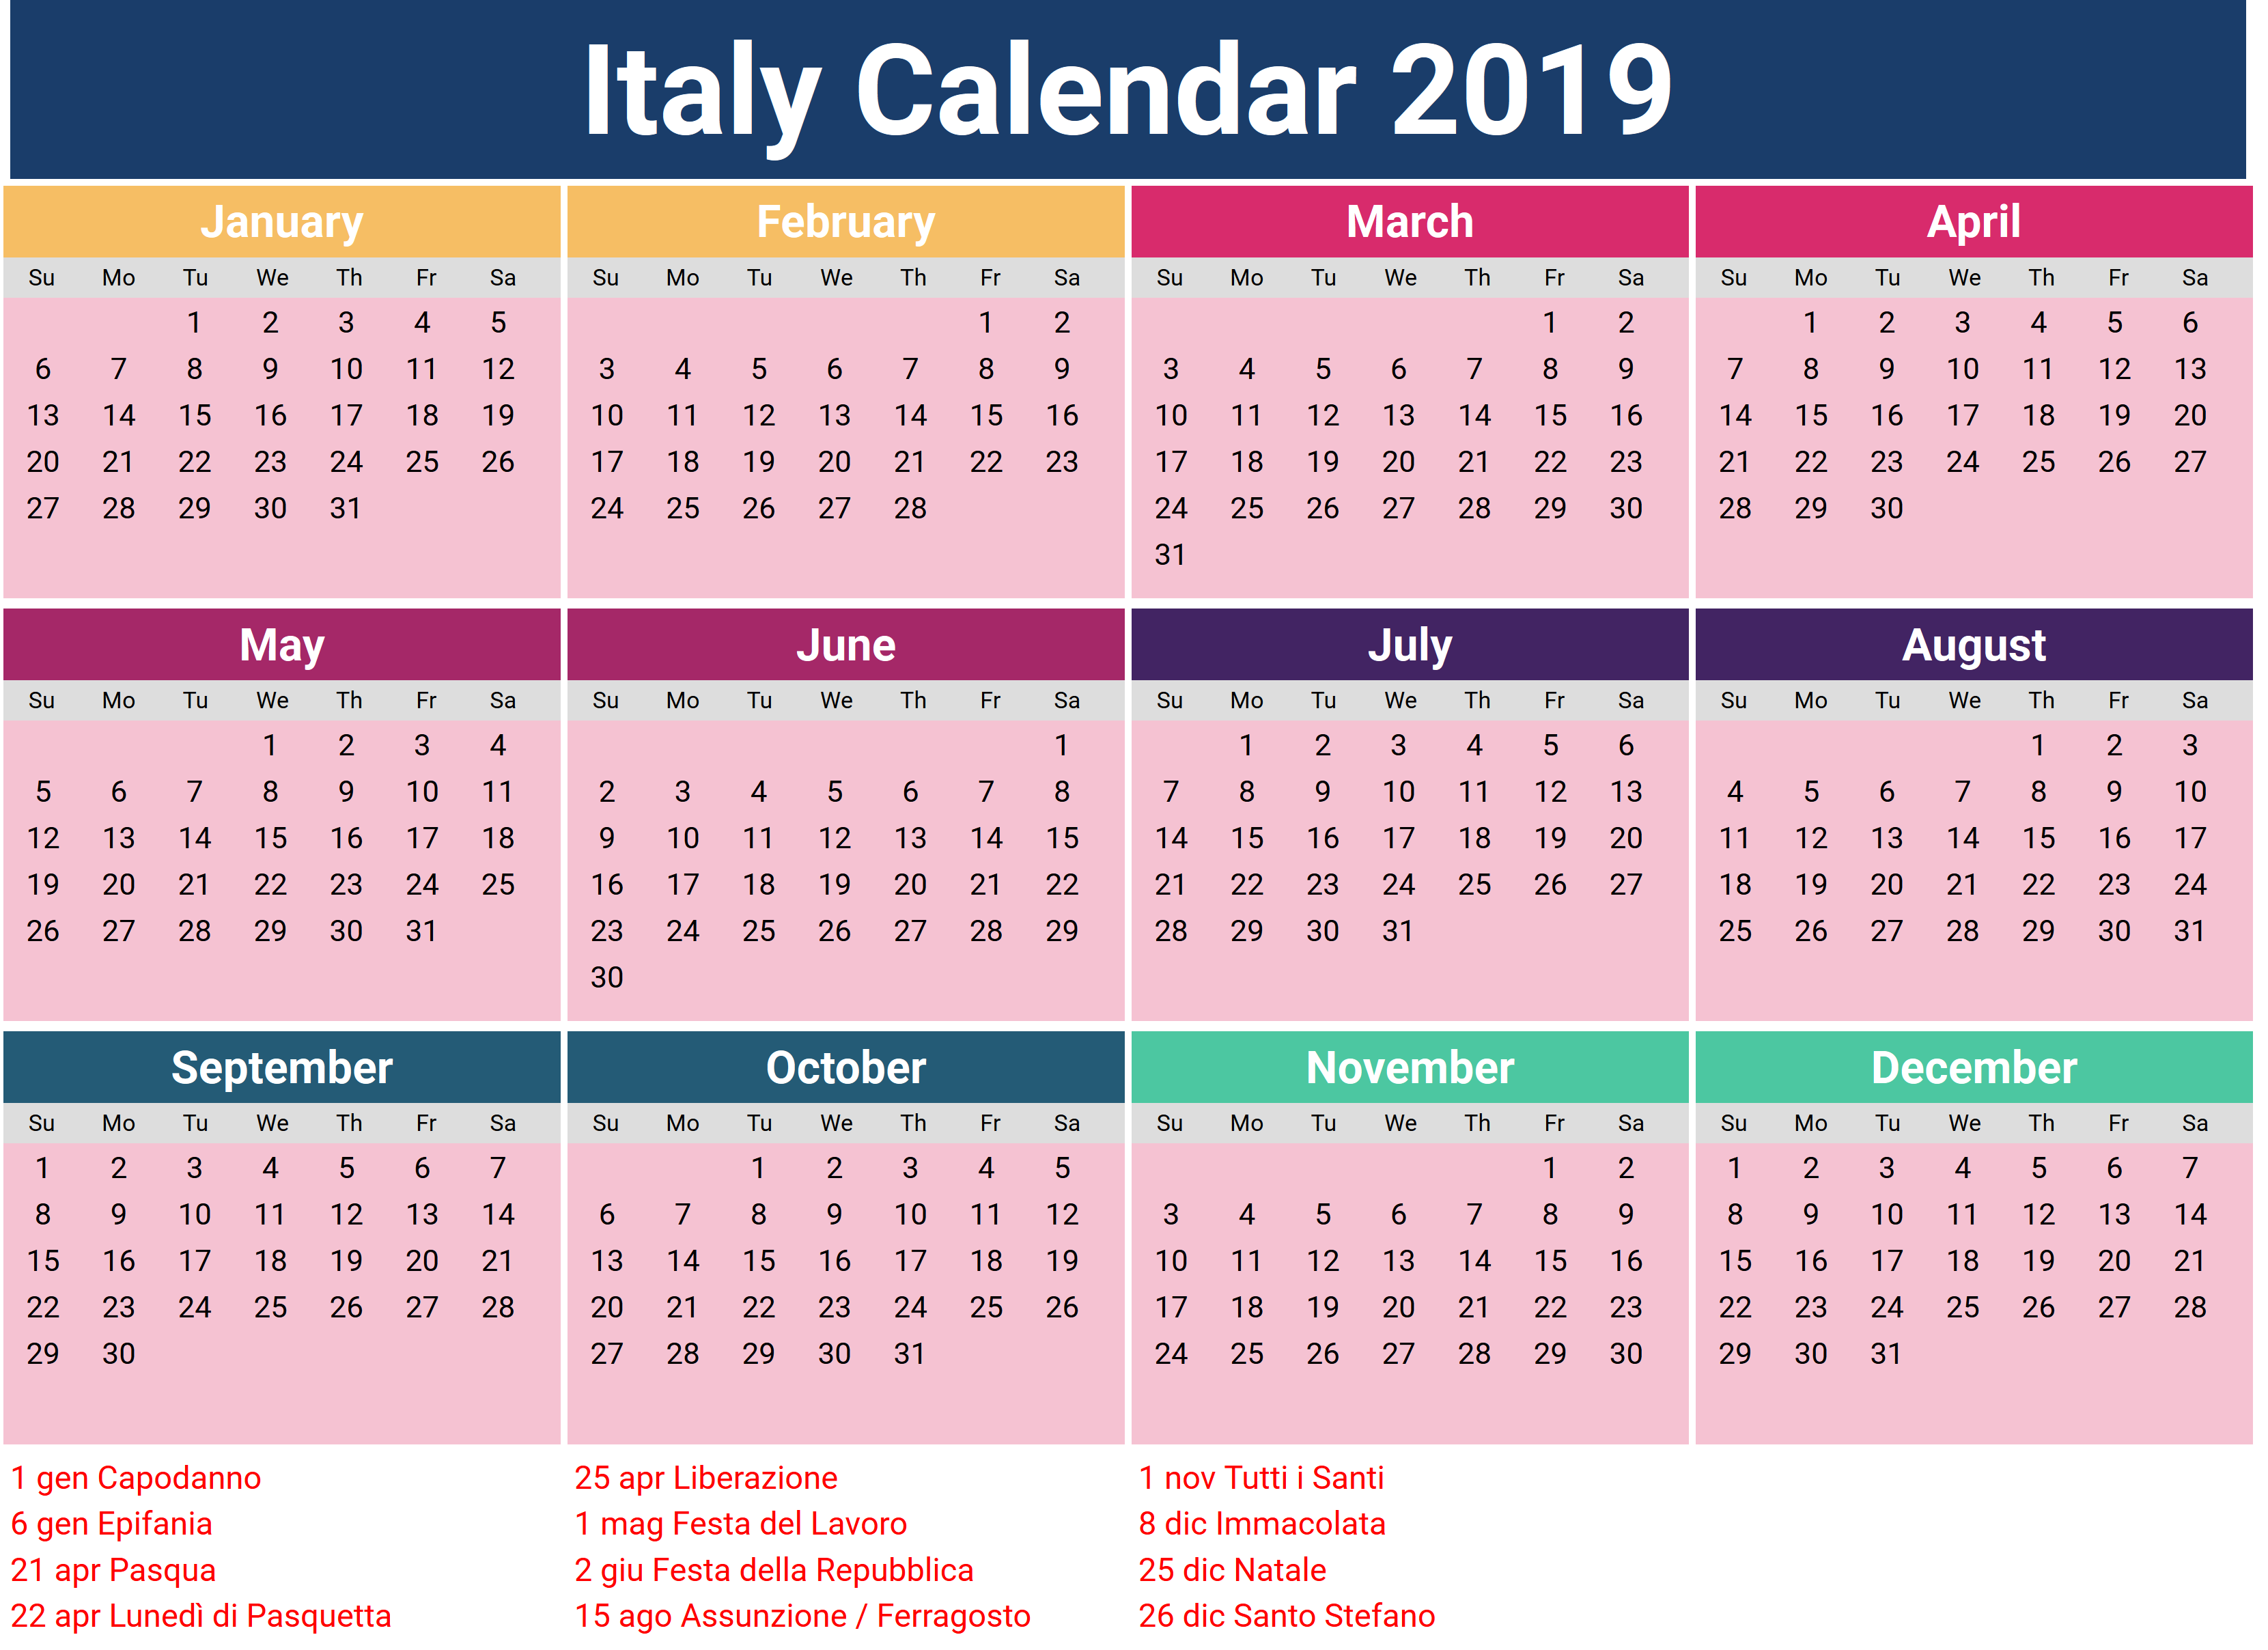 Public Holidays in Italy 2019